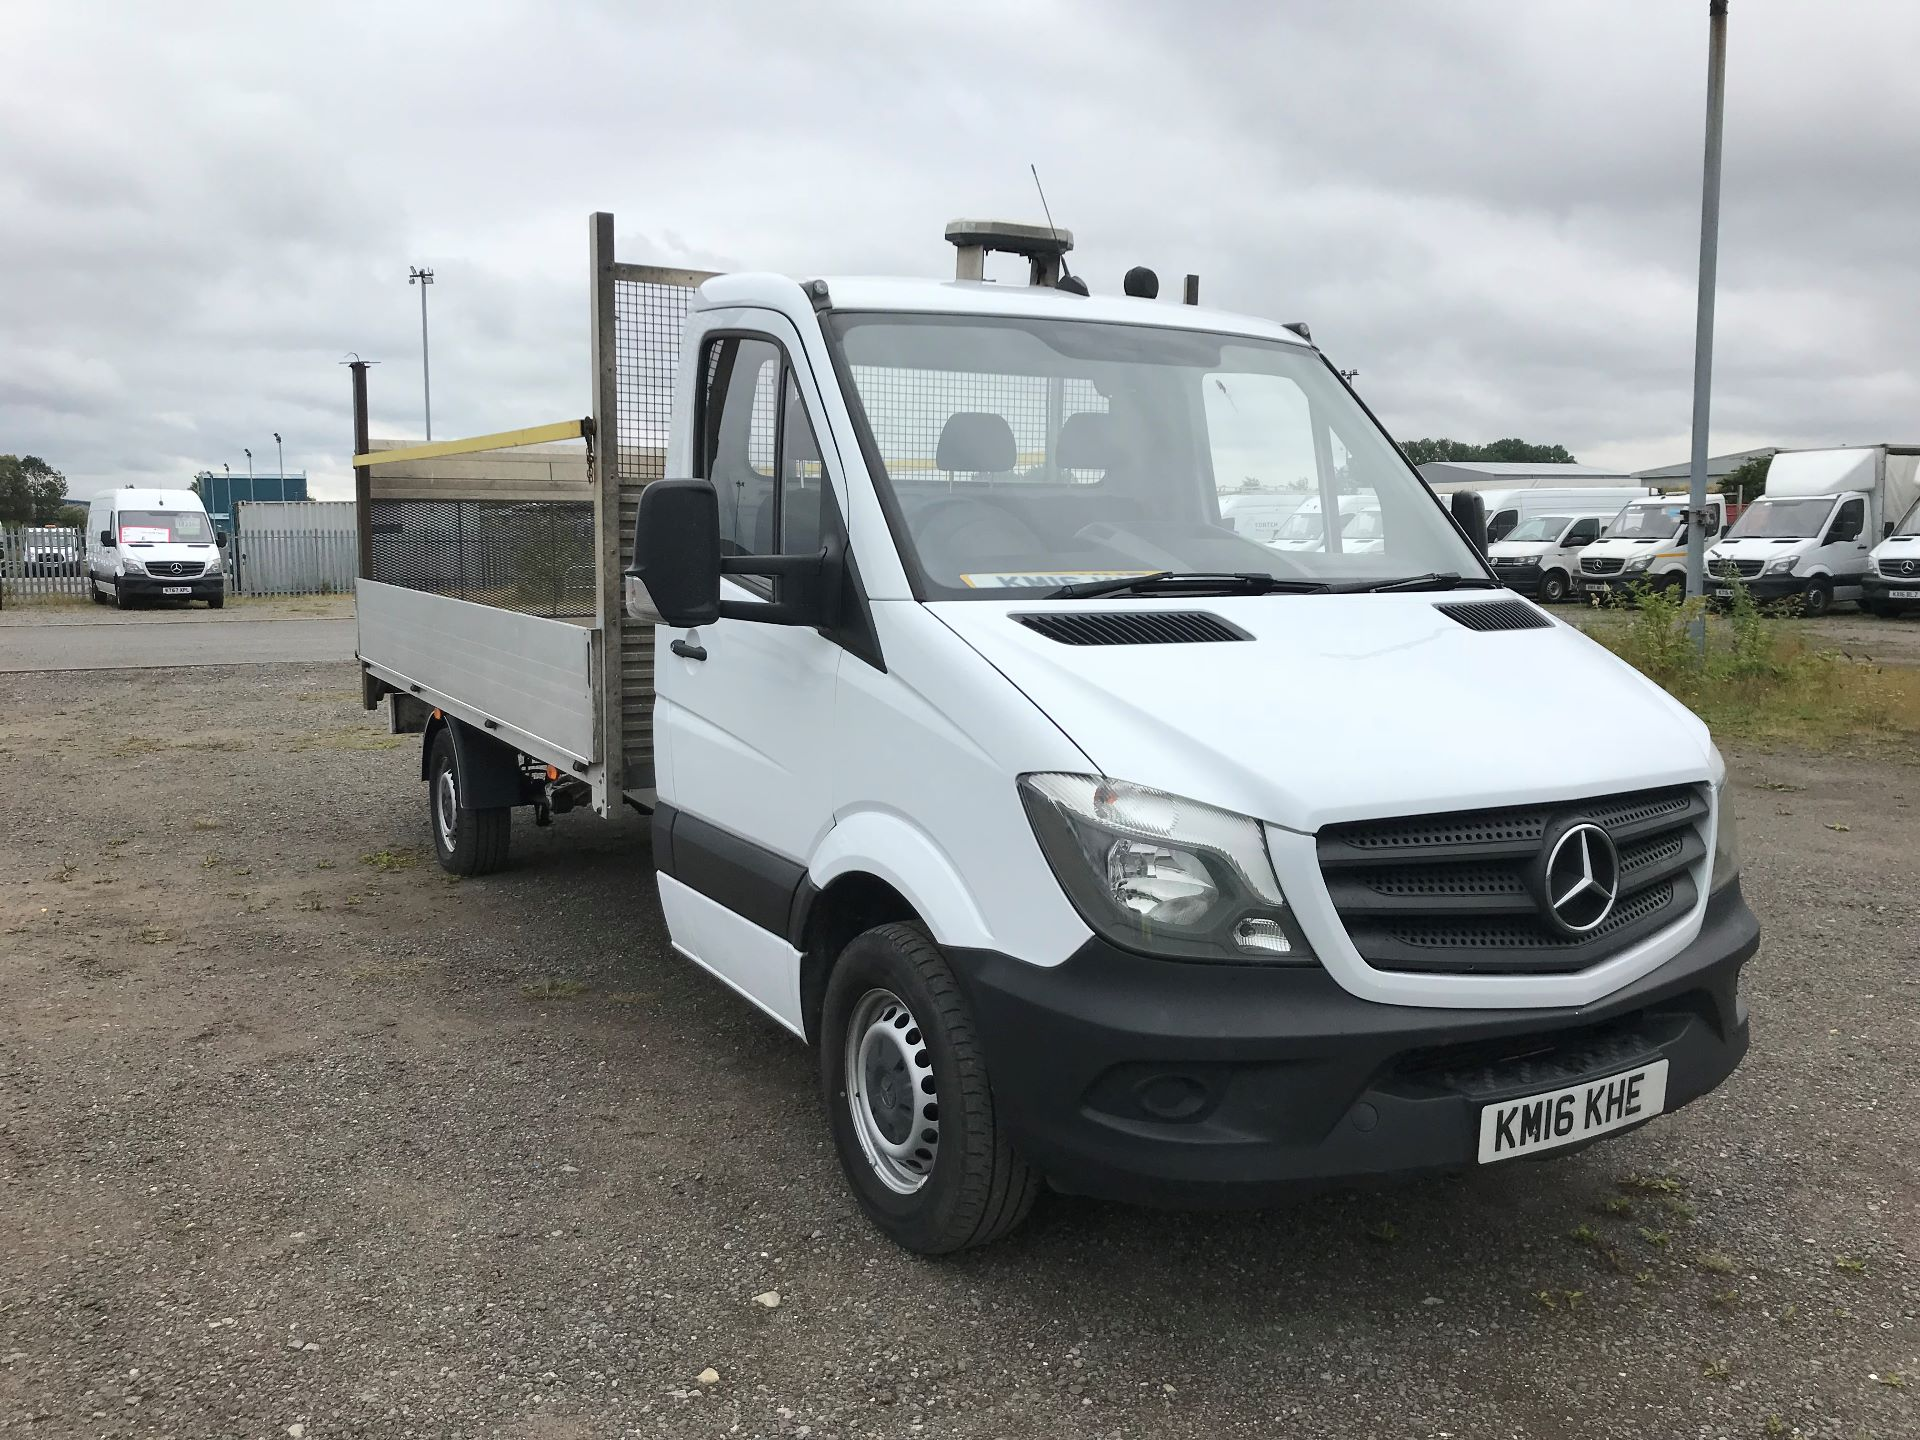 2016 Mercedes-Benz Sprinter 3.5T Chassis Cab (KM16KHE)